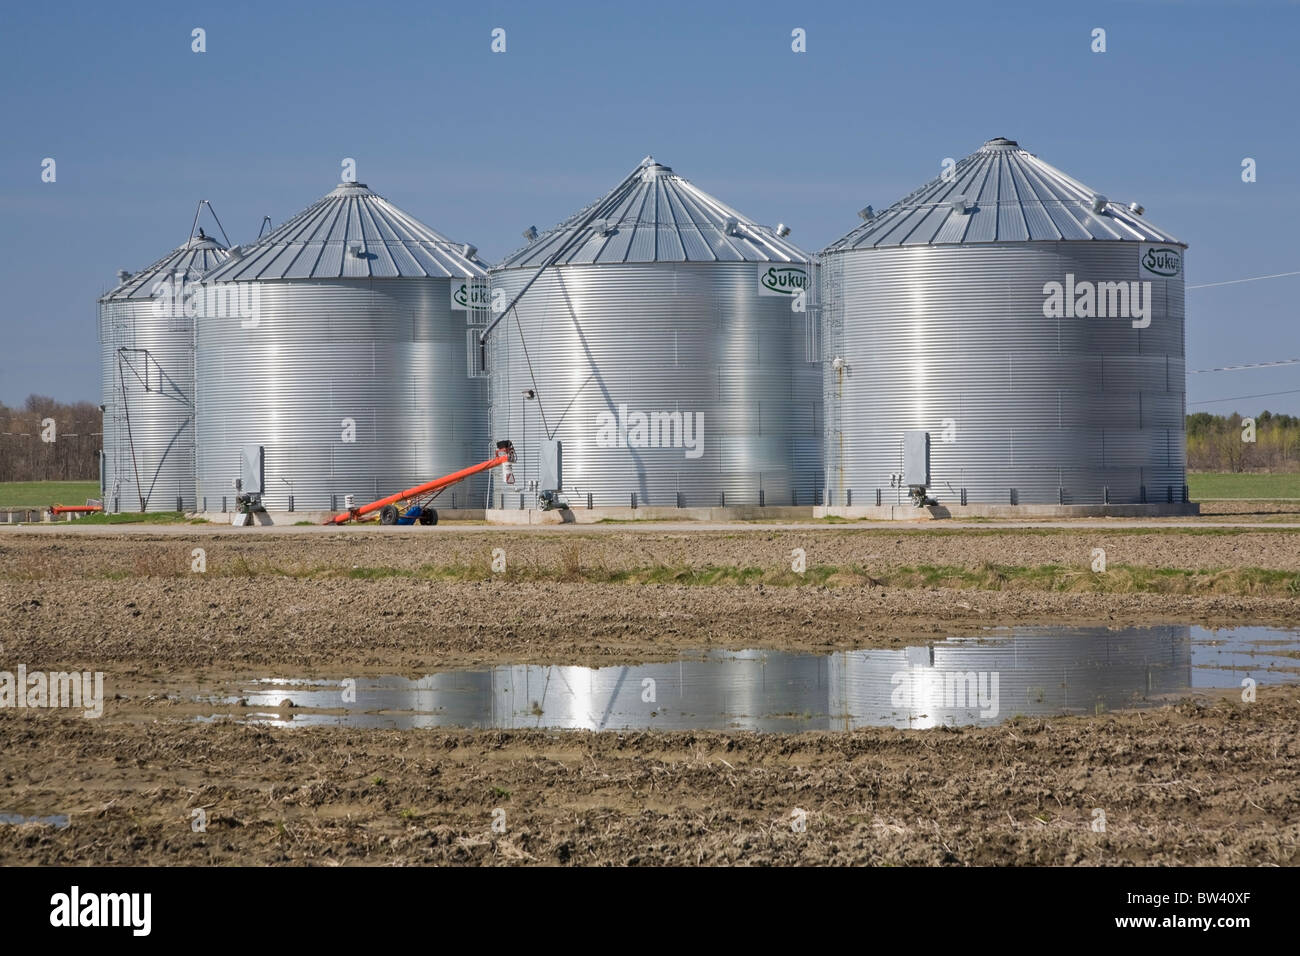 Grain storage bins in an agricultural field, Lanaudiere, Quebec, Canada - Stock Image